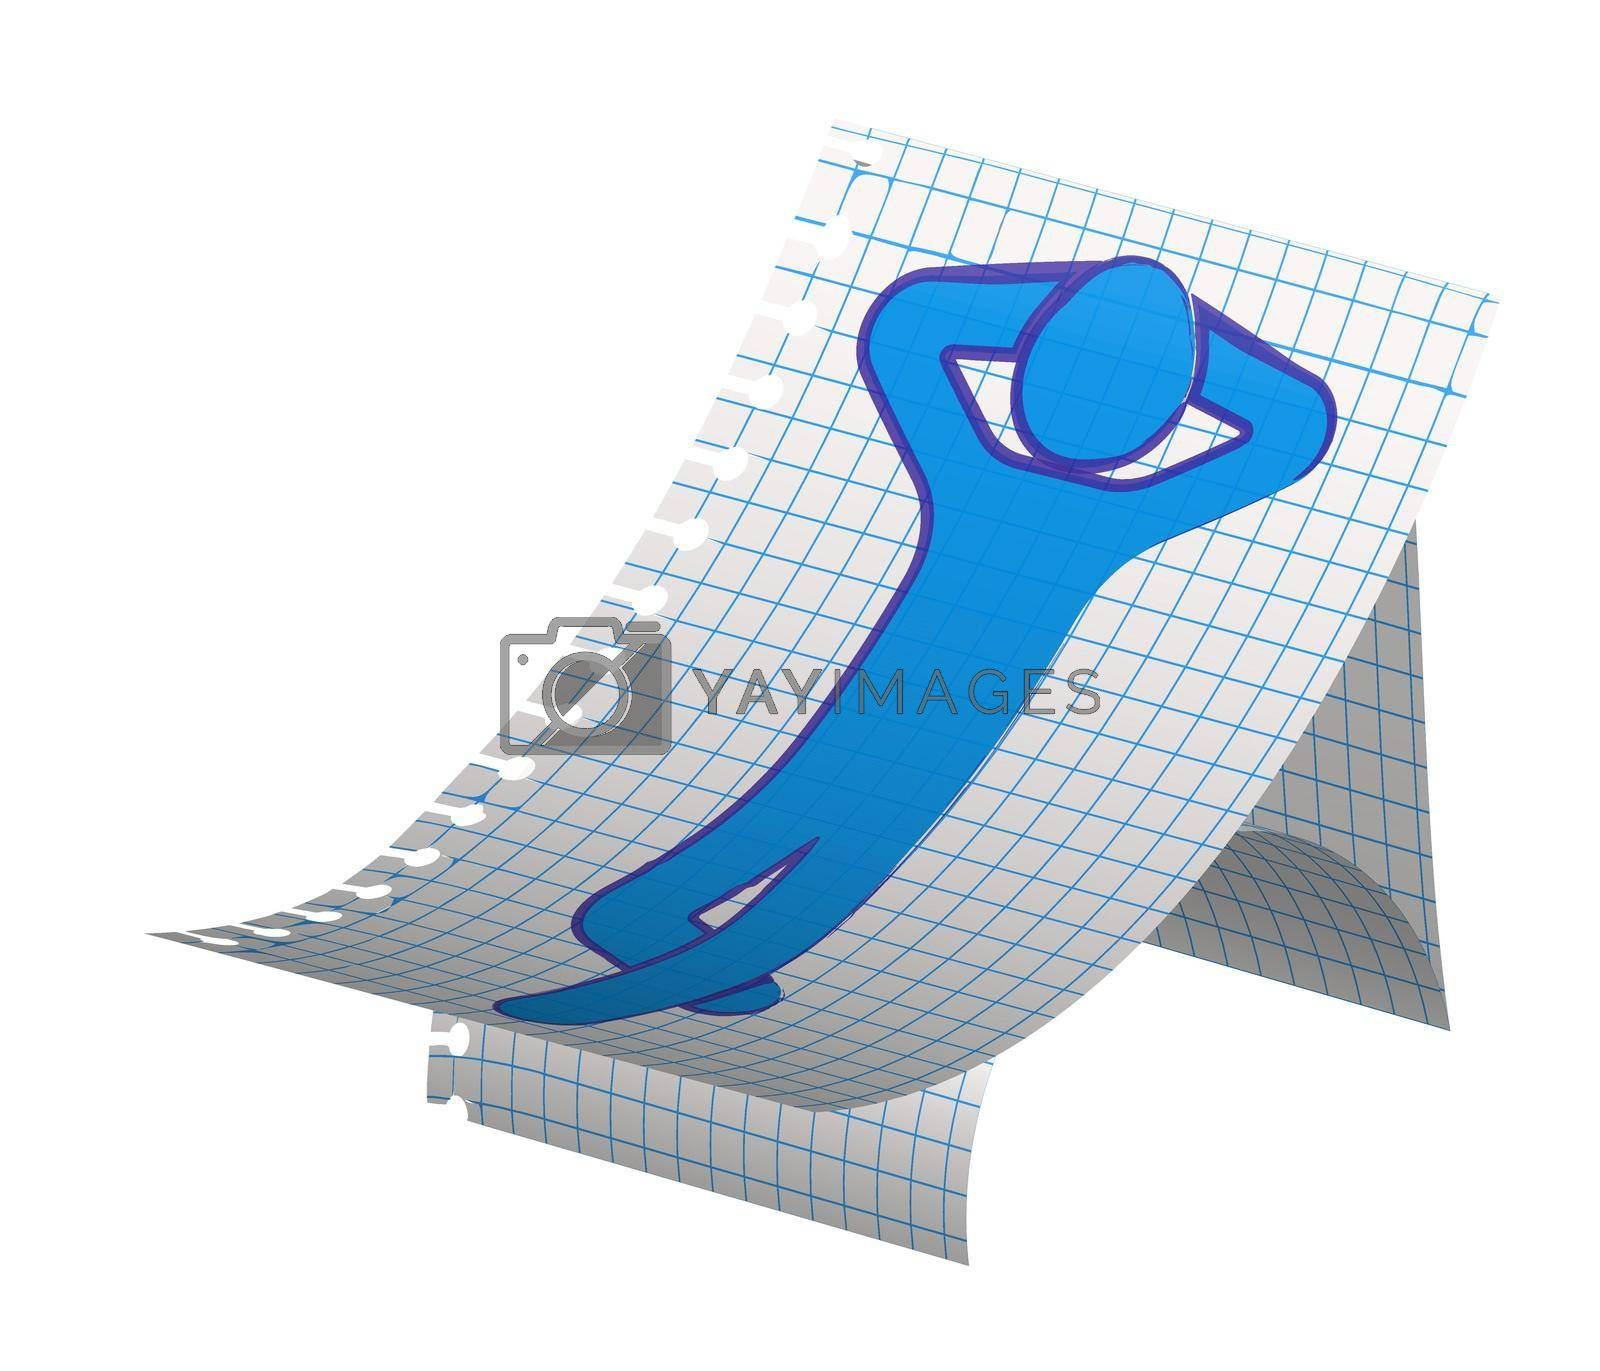 Royalty free image of man lies on a beach chair, takes sunbathing. Summer vacation at sea. Drawing with ink on a checkered paper sheet. Isolated vector on white background by RNko